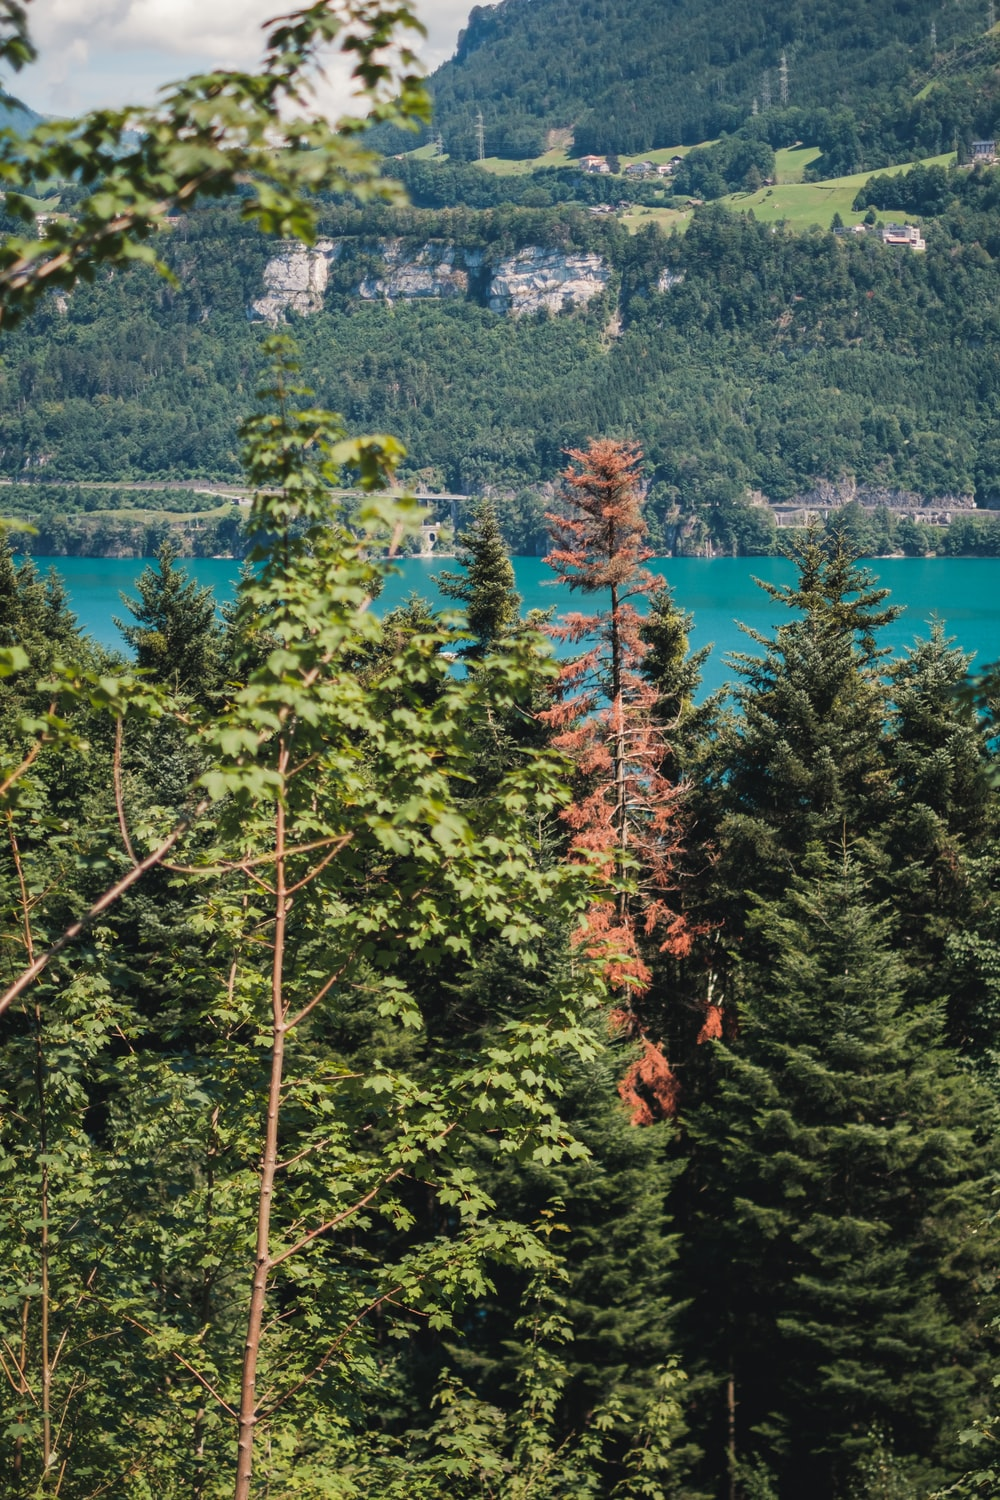 green and red leaf trees near body of water during daytime